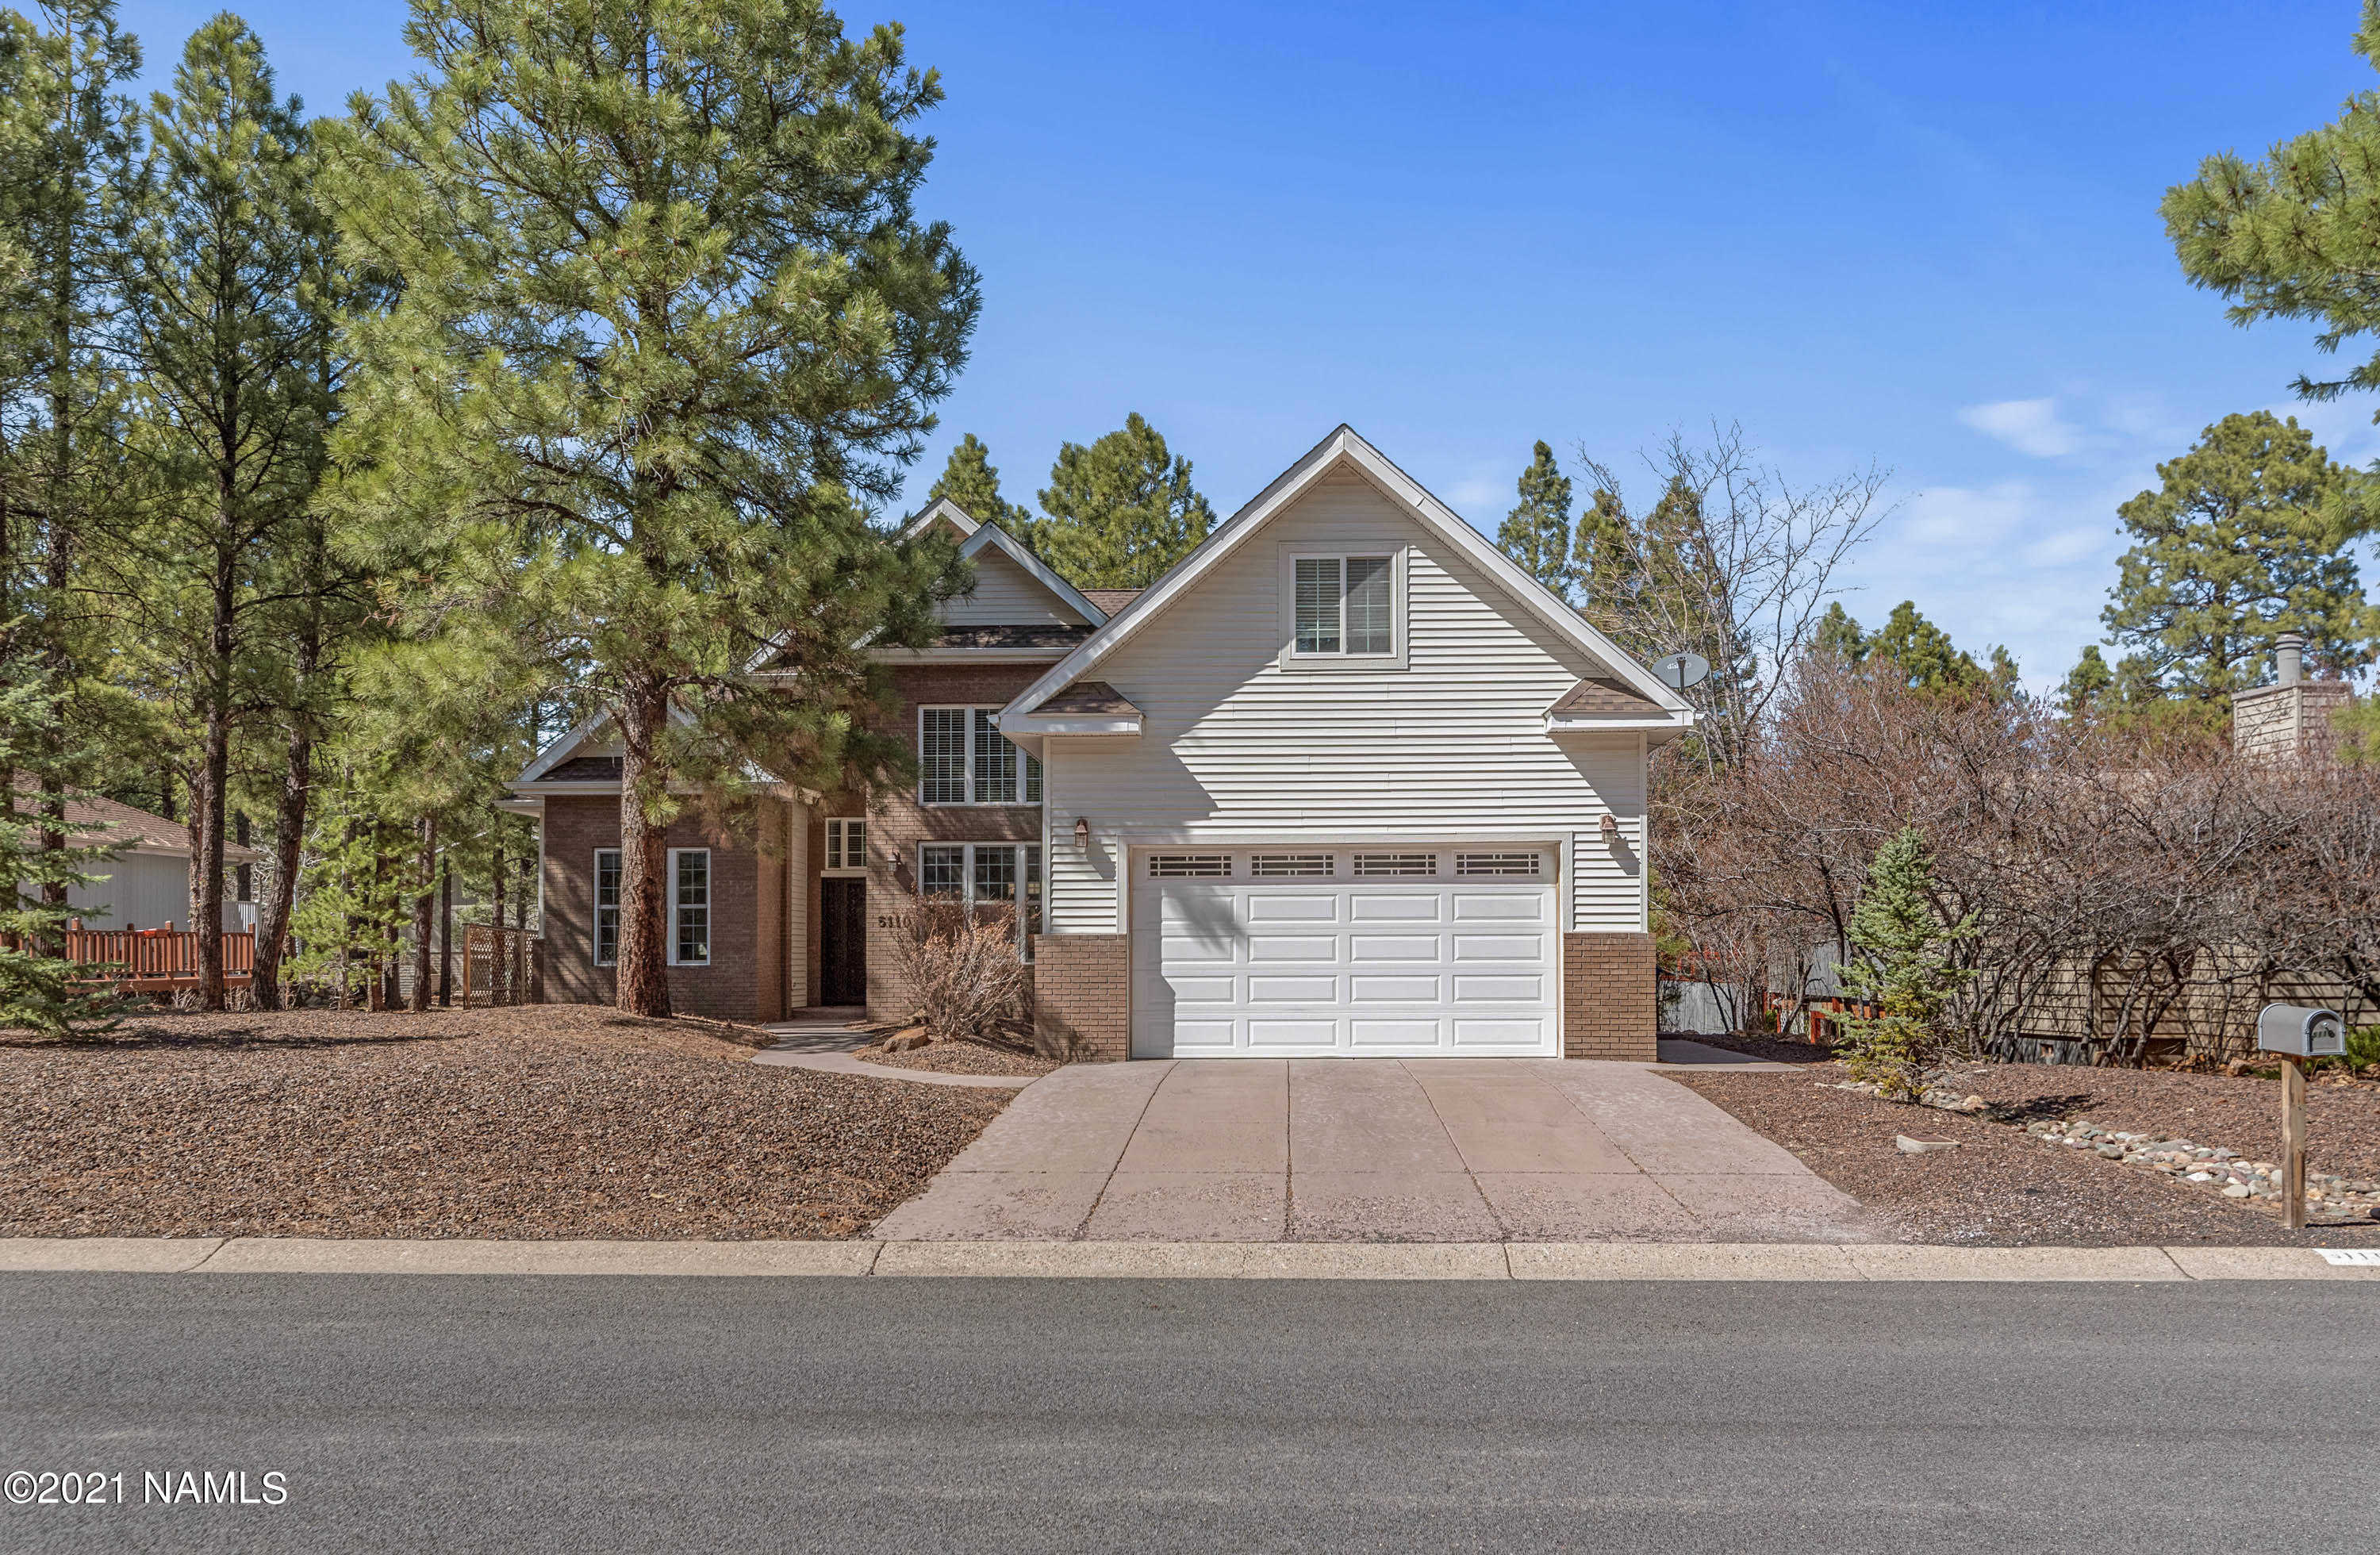 $870,000 - 4Br/5Ba -  for Sale in Flagstaff